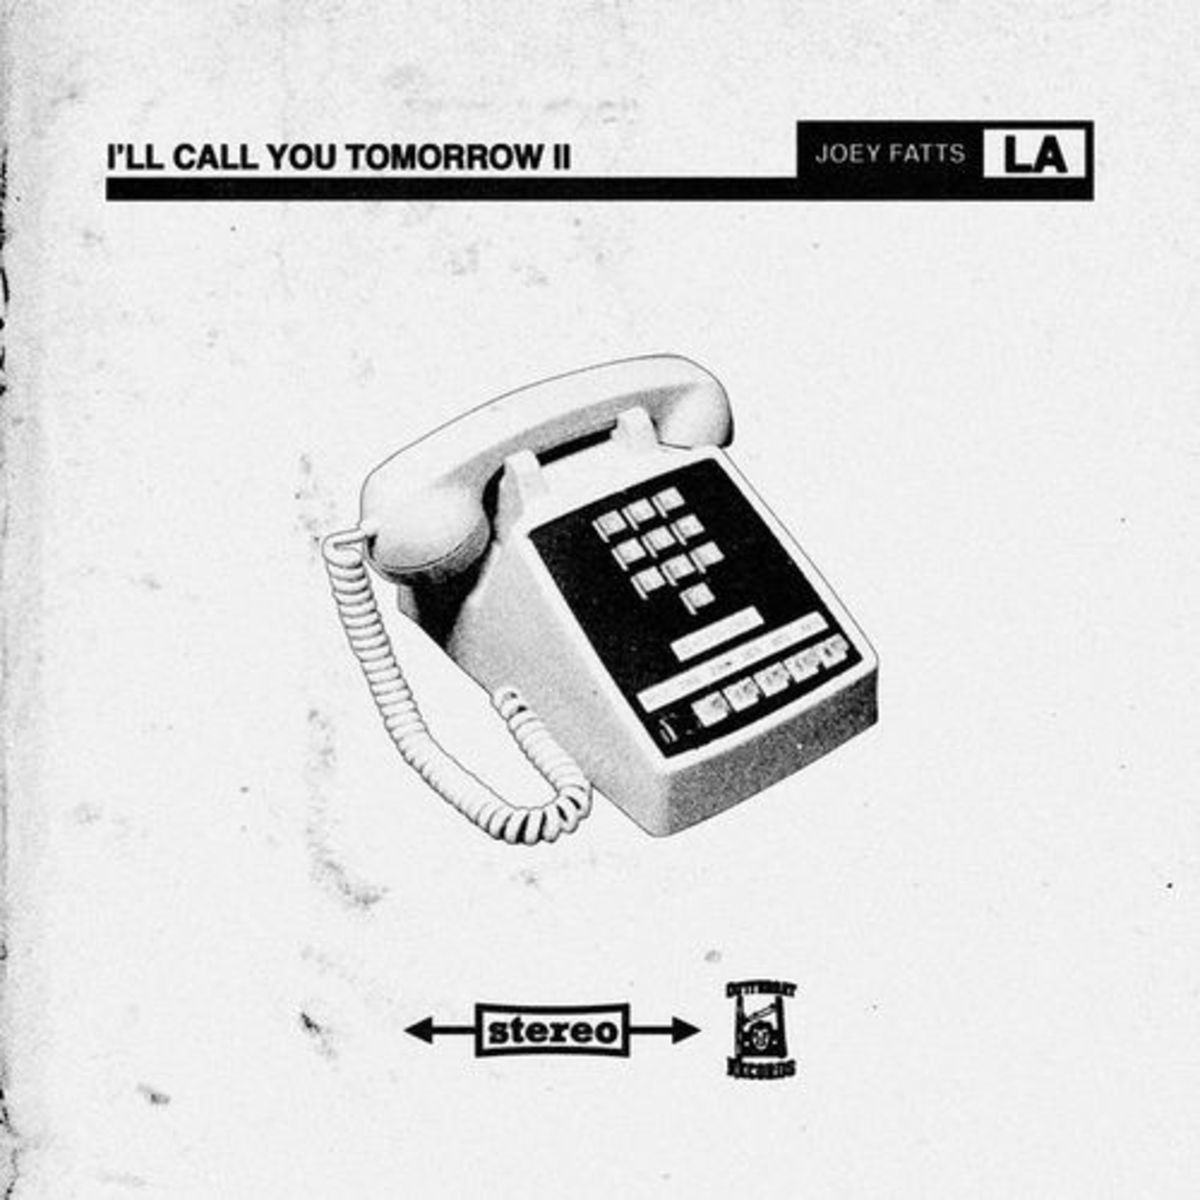 joey-fatts-ill-call-you-tomorrow-2.jpg